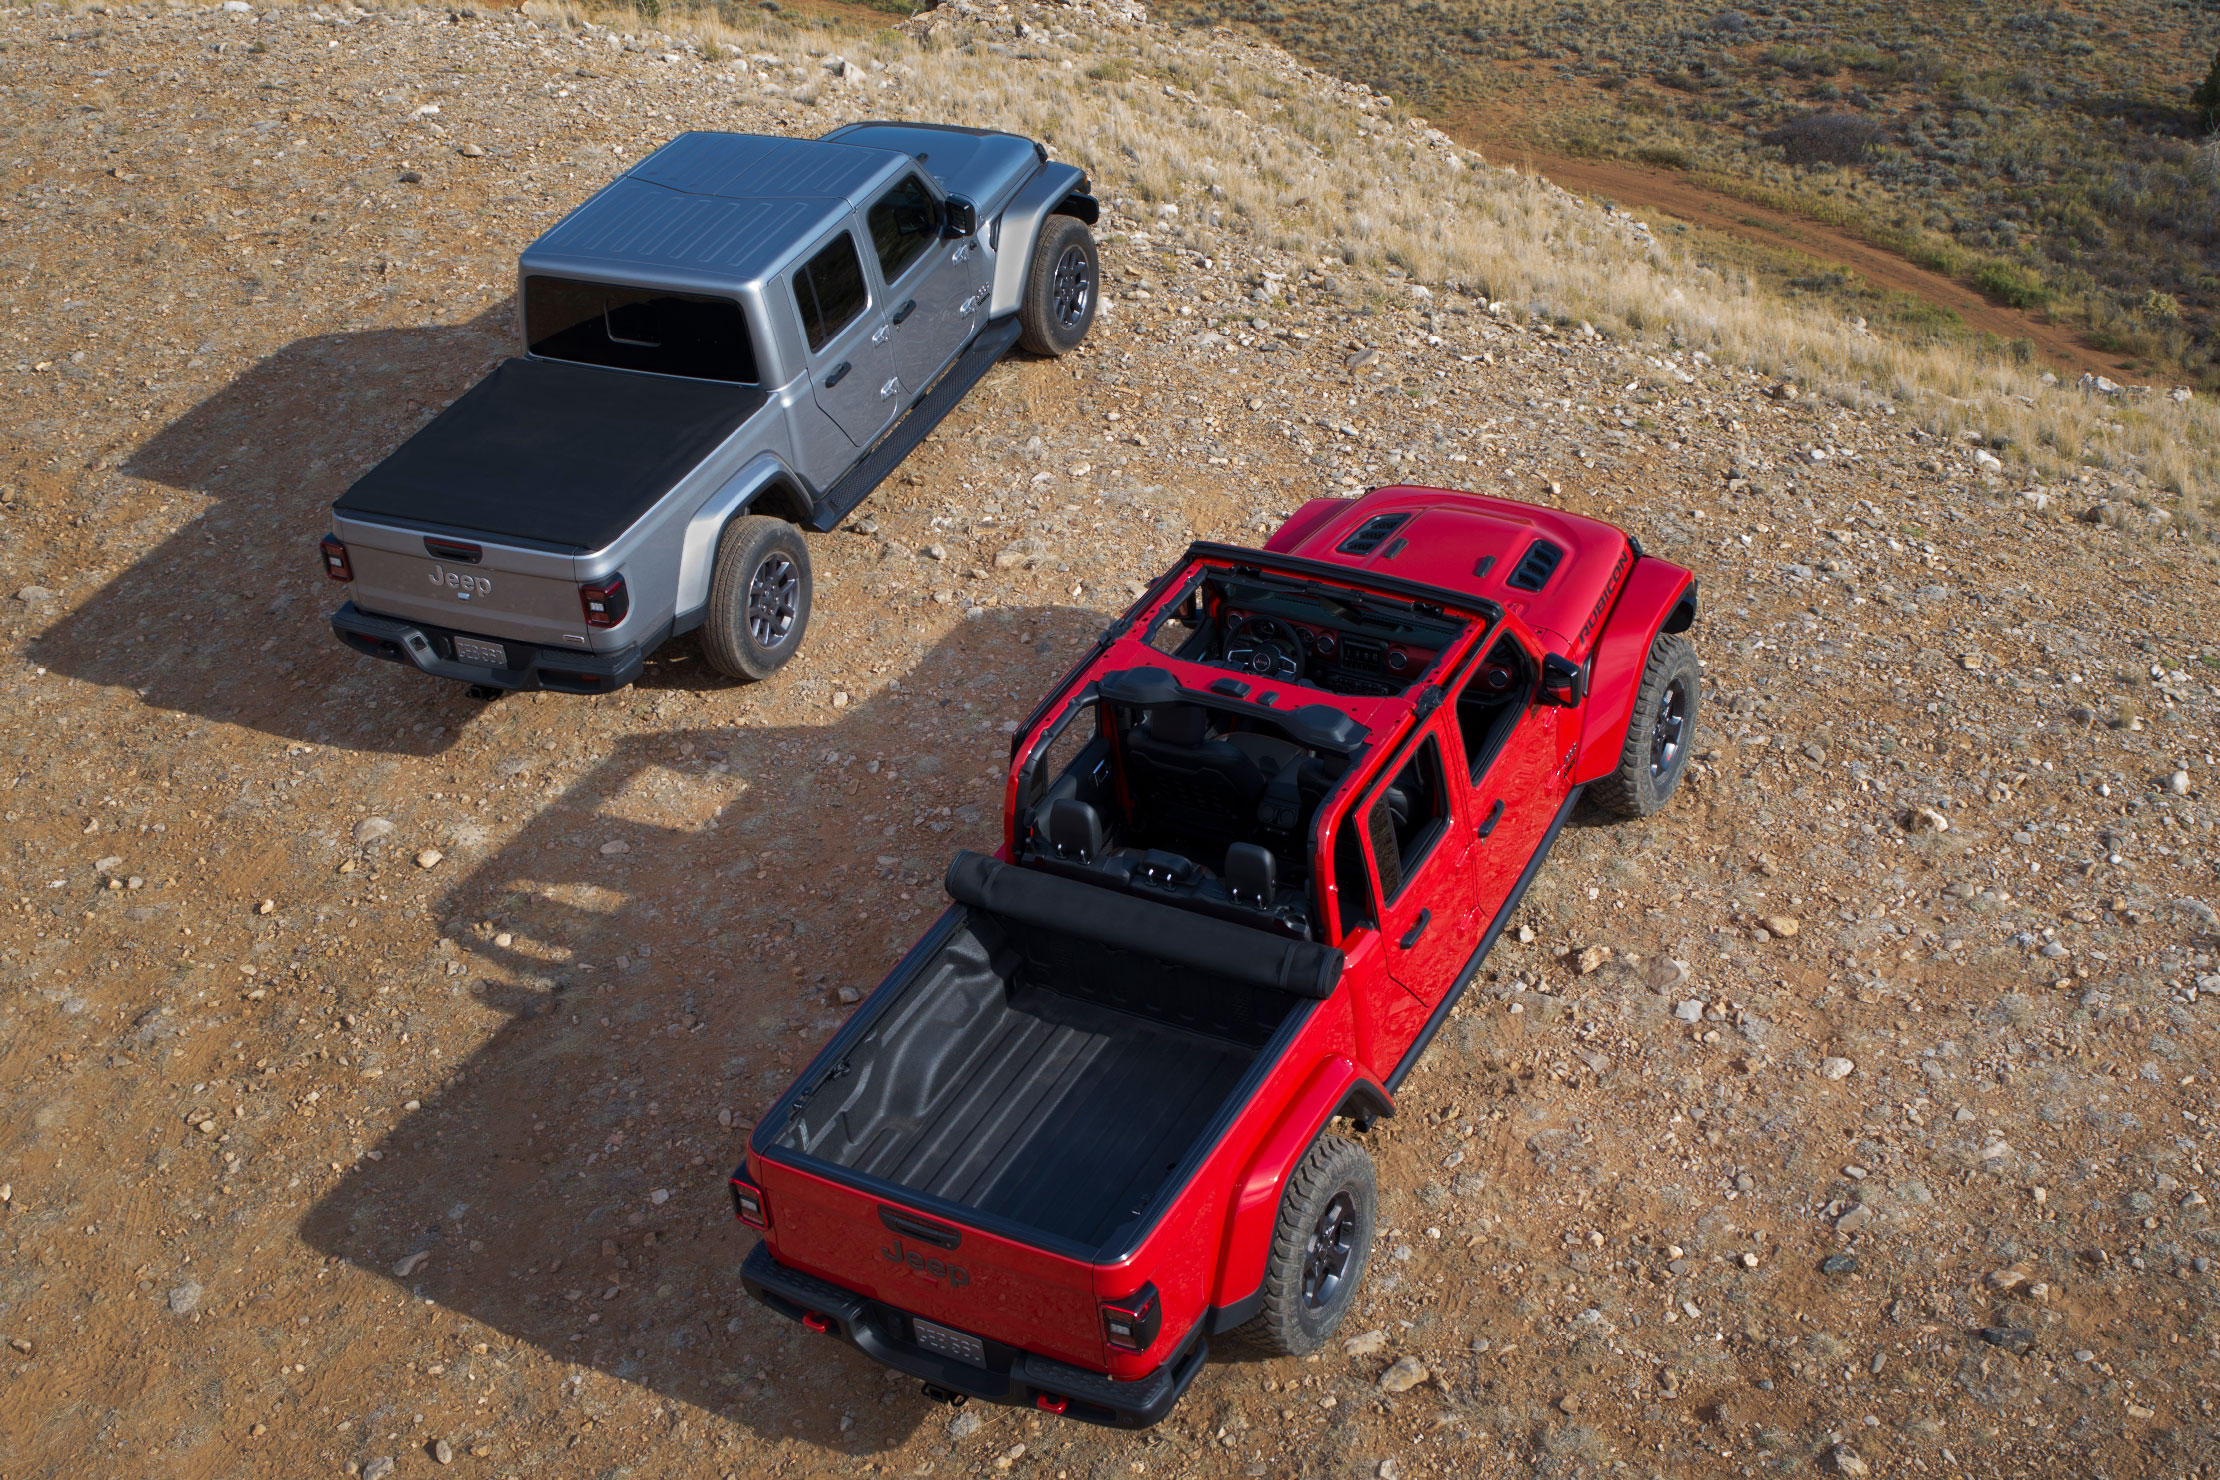 2020 Jeep Gladiator: The Solid-Axle, Open-Air Truck of Your